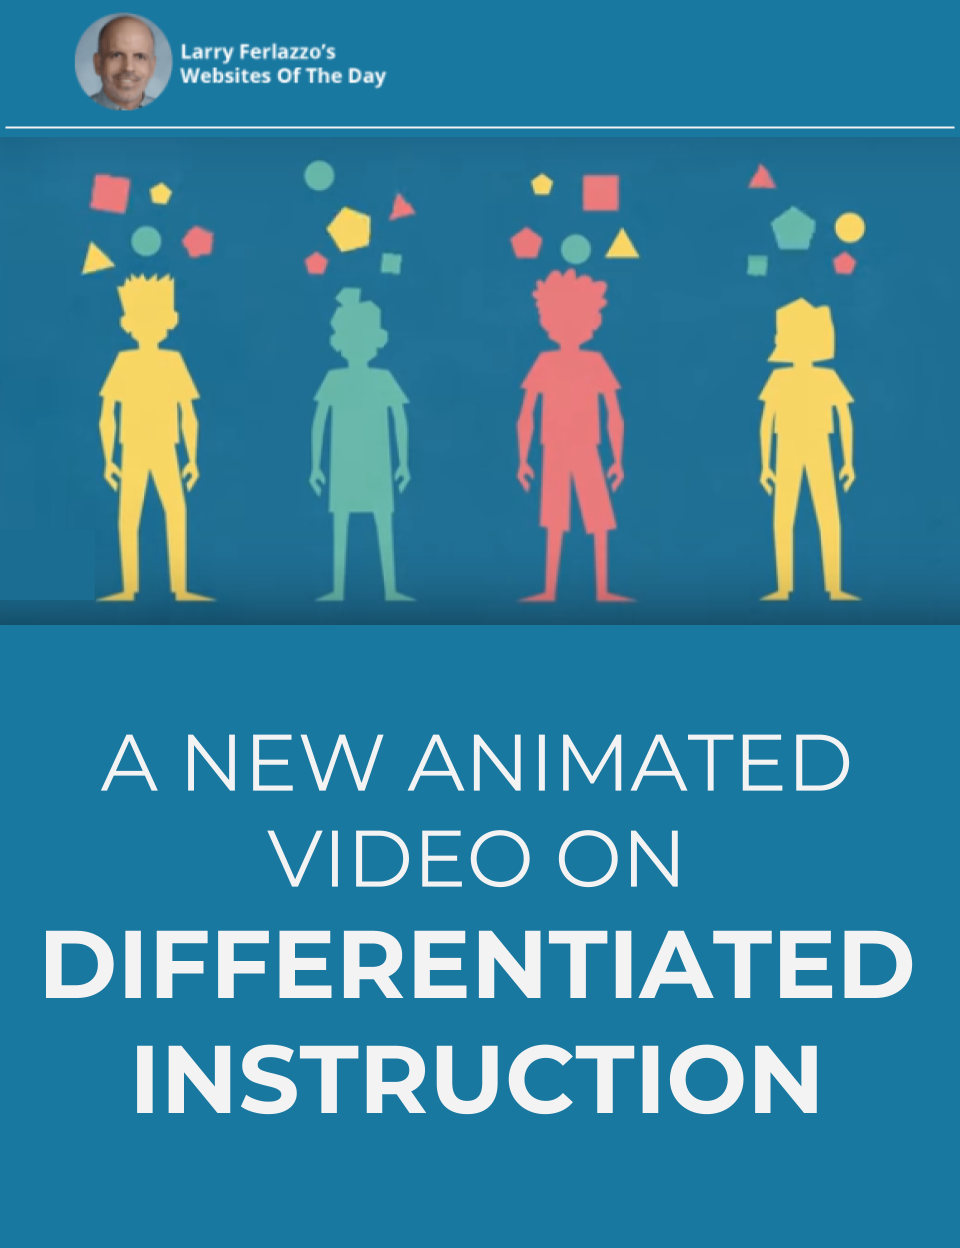 Here's A New Animated Video We Did With Education Week On Differentiated Instruction is part of Differentiated instruction, Differentiated instruction elementary, Differentiated instruction strategies, Differentiated learning, Differentiation strategies, Teachers learning - Katie Hull and I worked with Education Week to create this new   and, I think, nifty   animated explainer about differentiated instruction  Check it out and let me know what you think! …